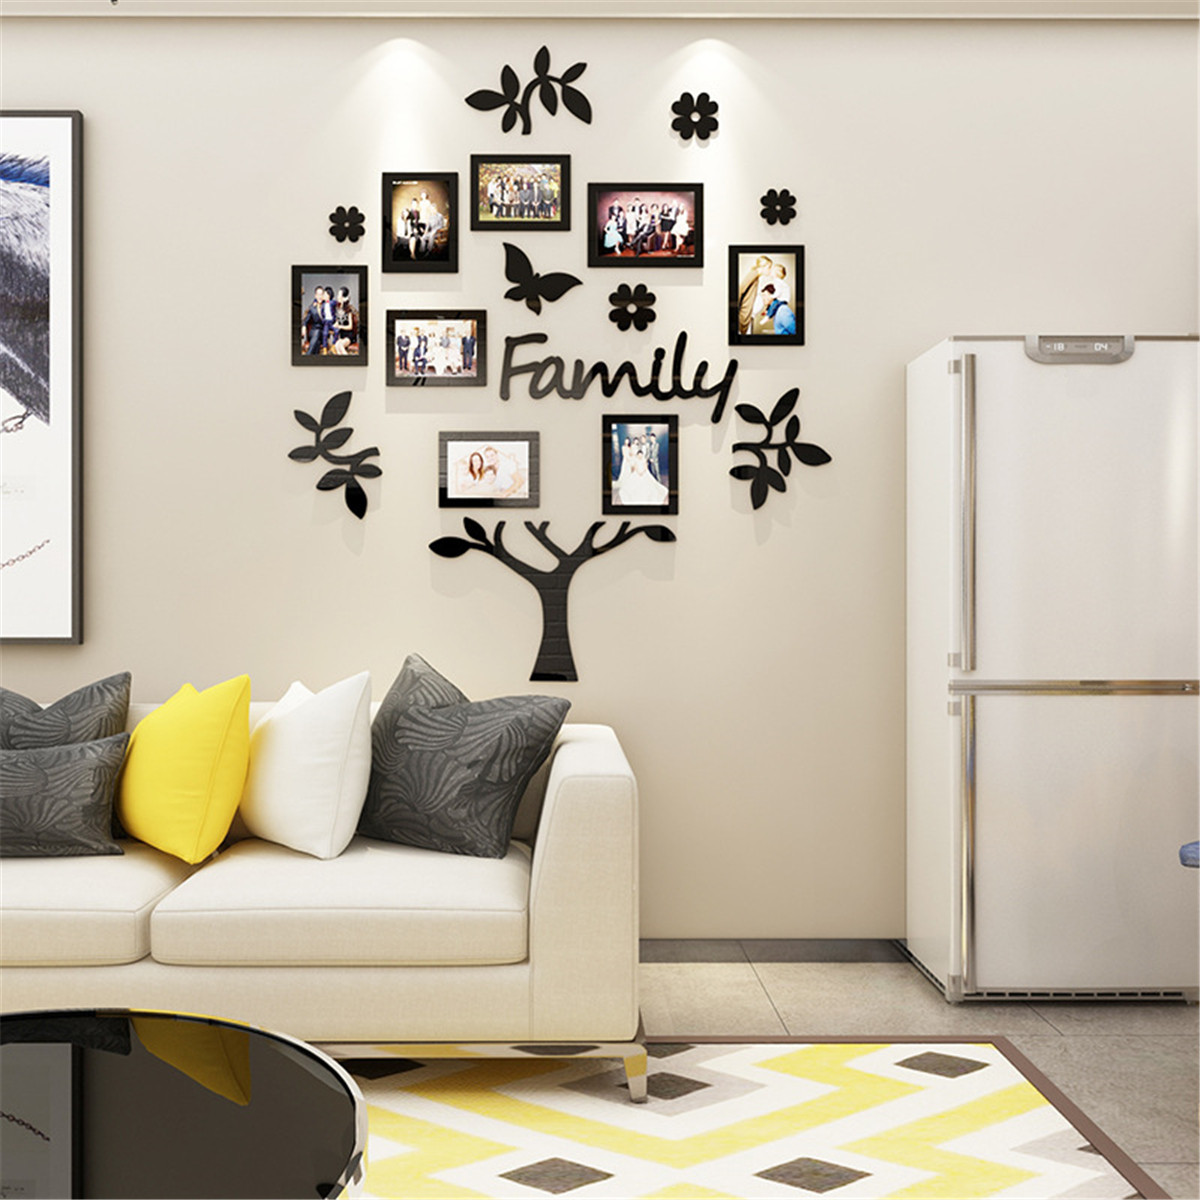 Pictures Collage Frame Kit Wall Art